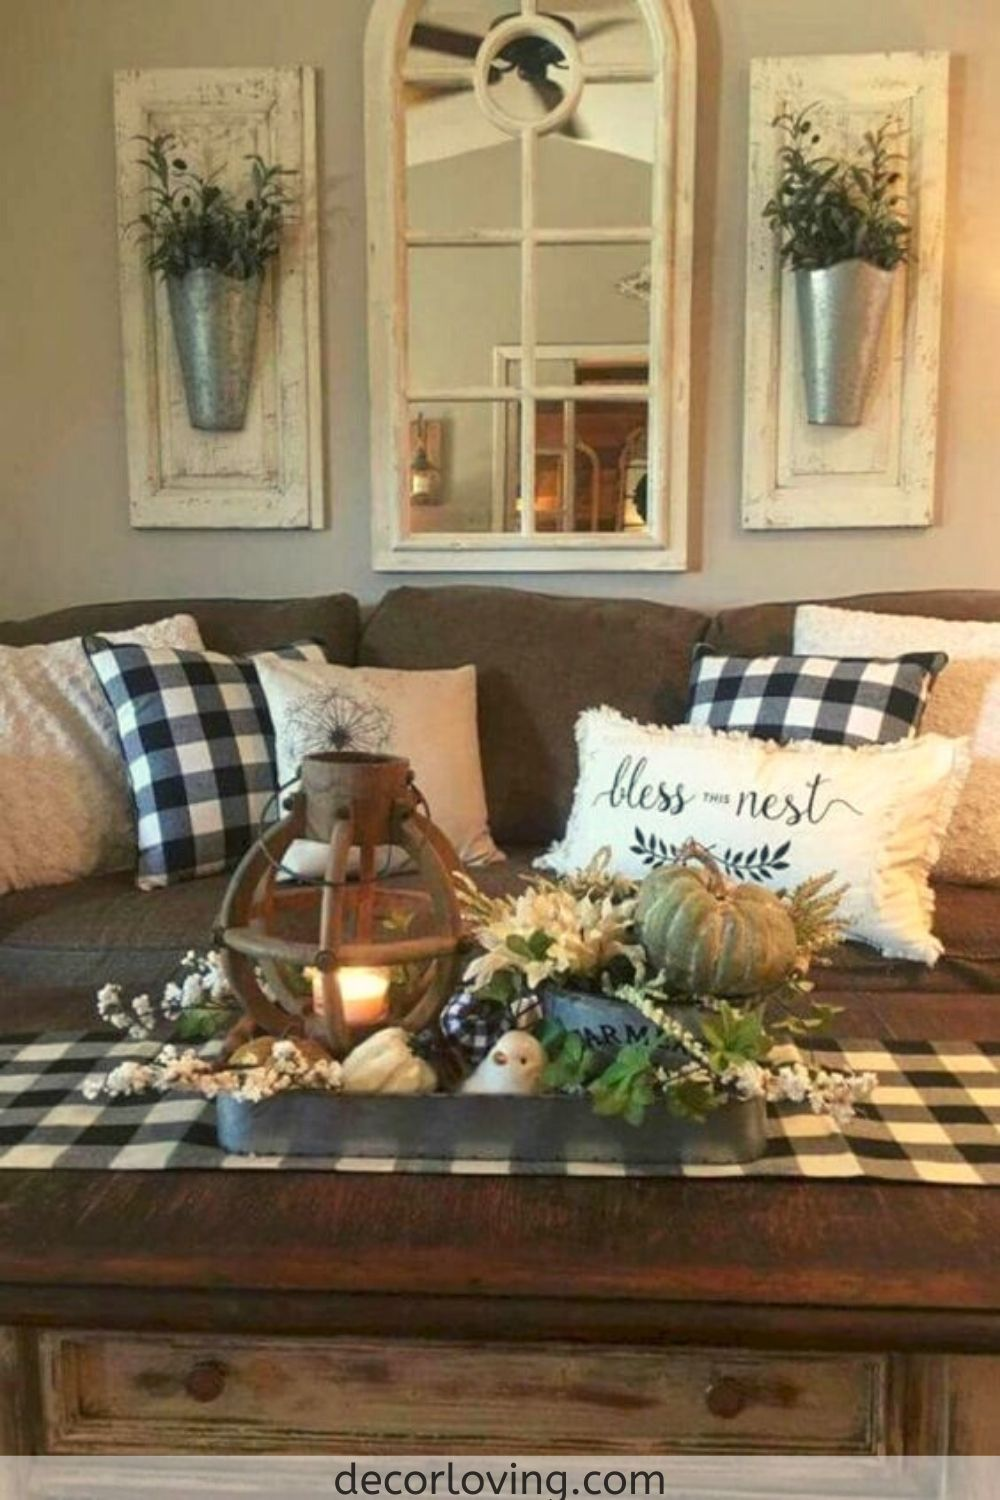 21 Fantastic Farmhouse Living Room Decor Ideas On A Budget You Must Try In 2020 Farmhouse Decor Living Room Rustic Farmhouse Living Room Farm House Living Room